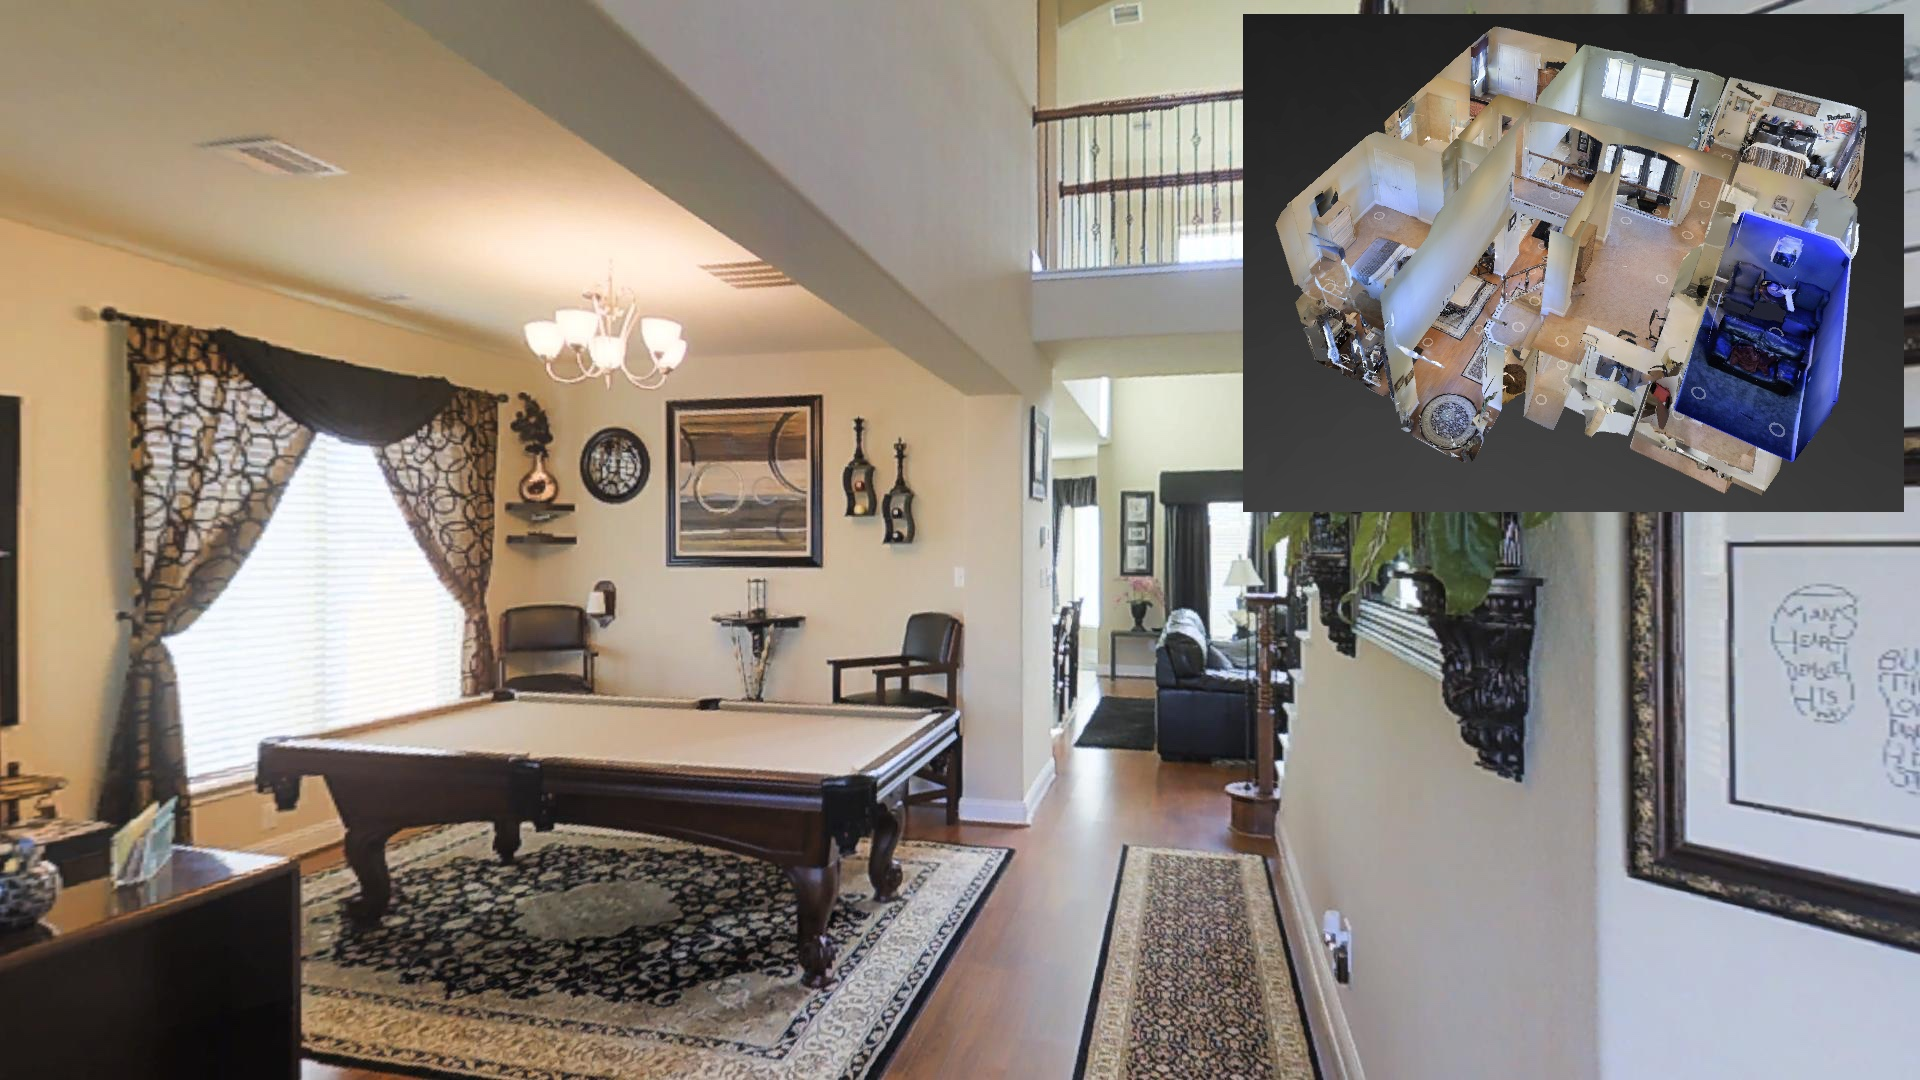 3-D SELF-GUIDED TOURS TO SELL YOUR HOME